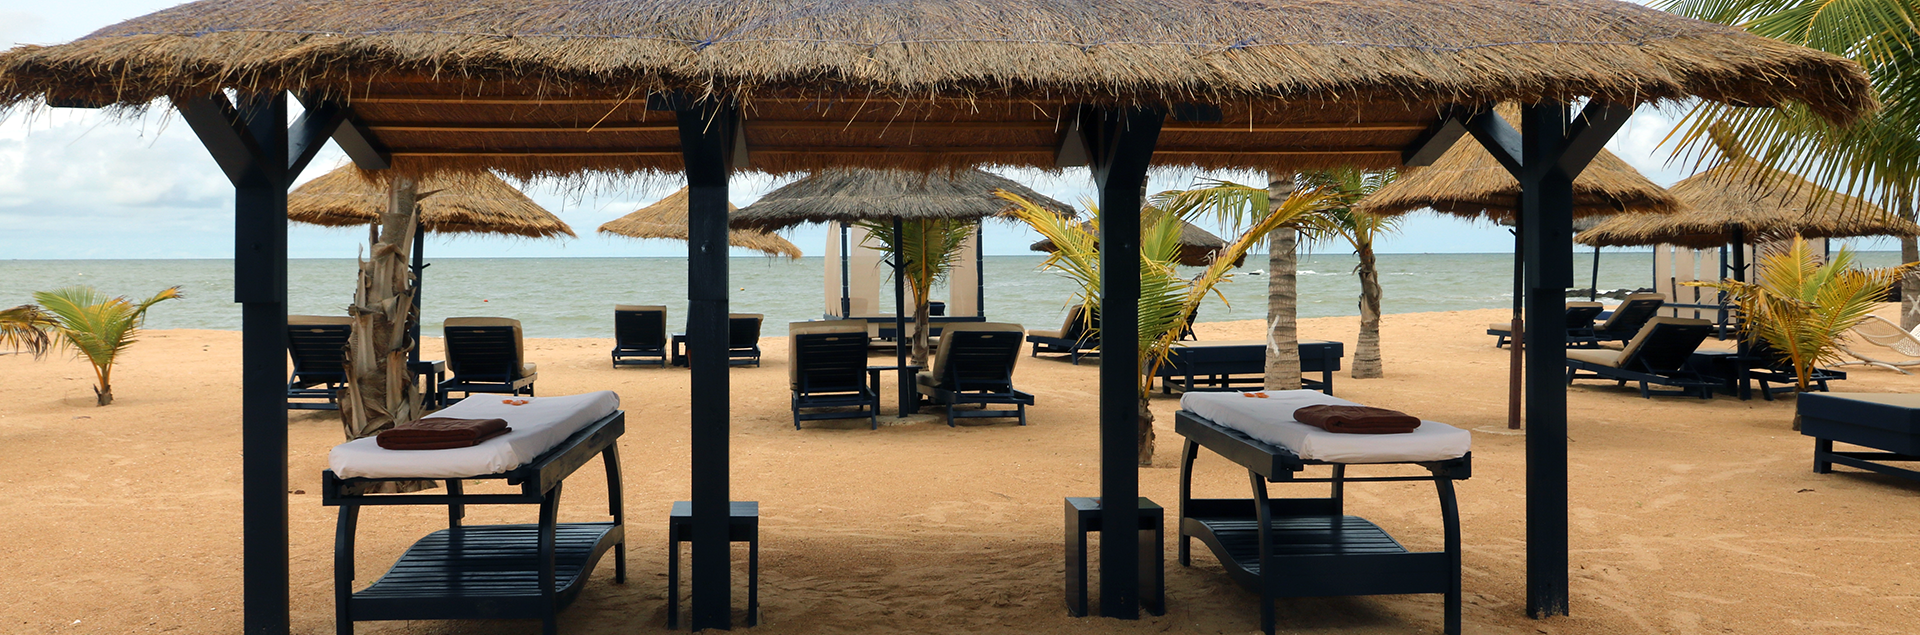 hotel-plage-senegal-saly